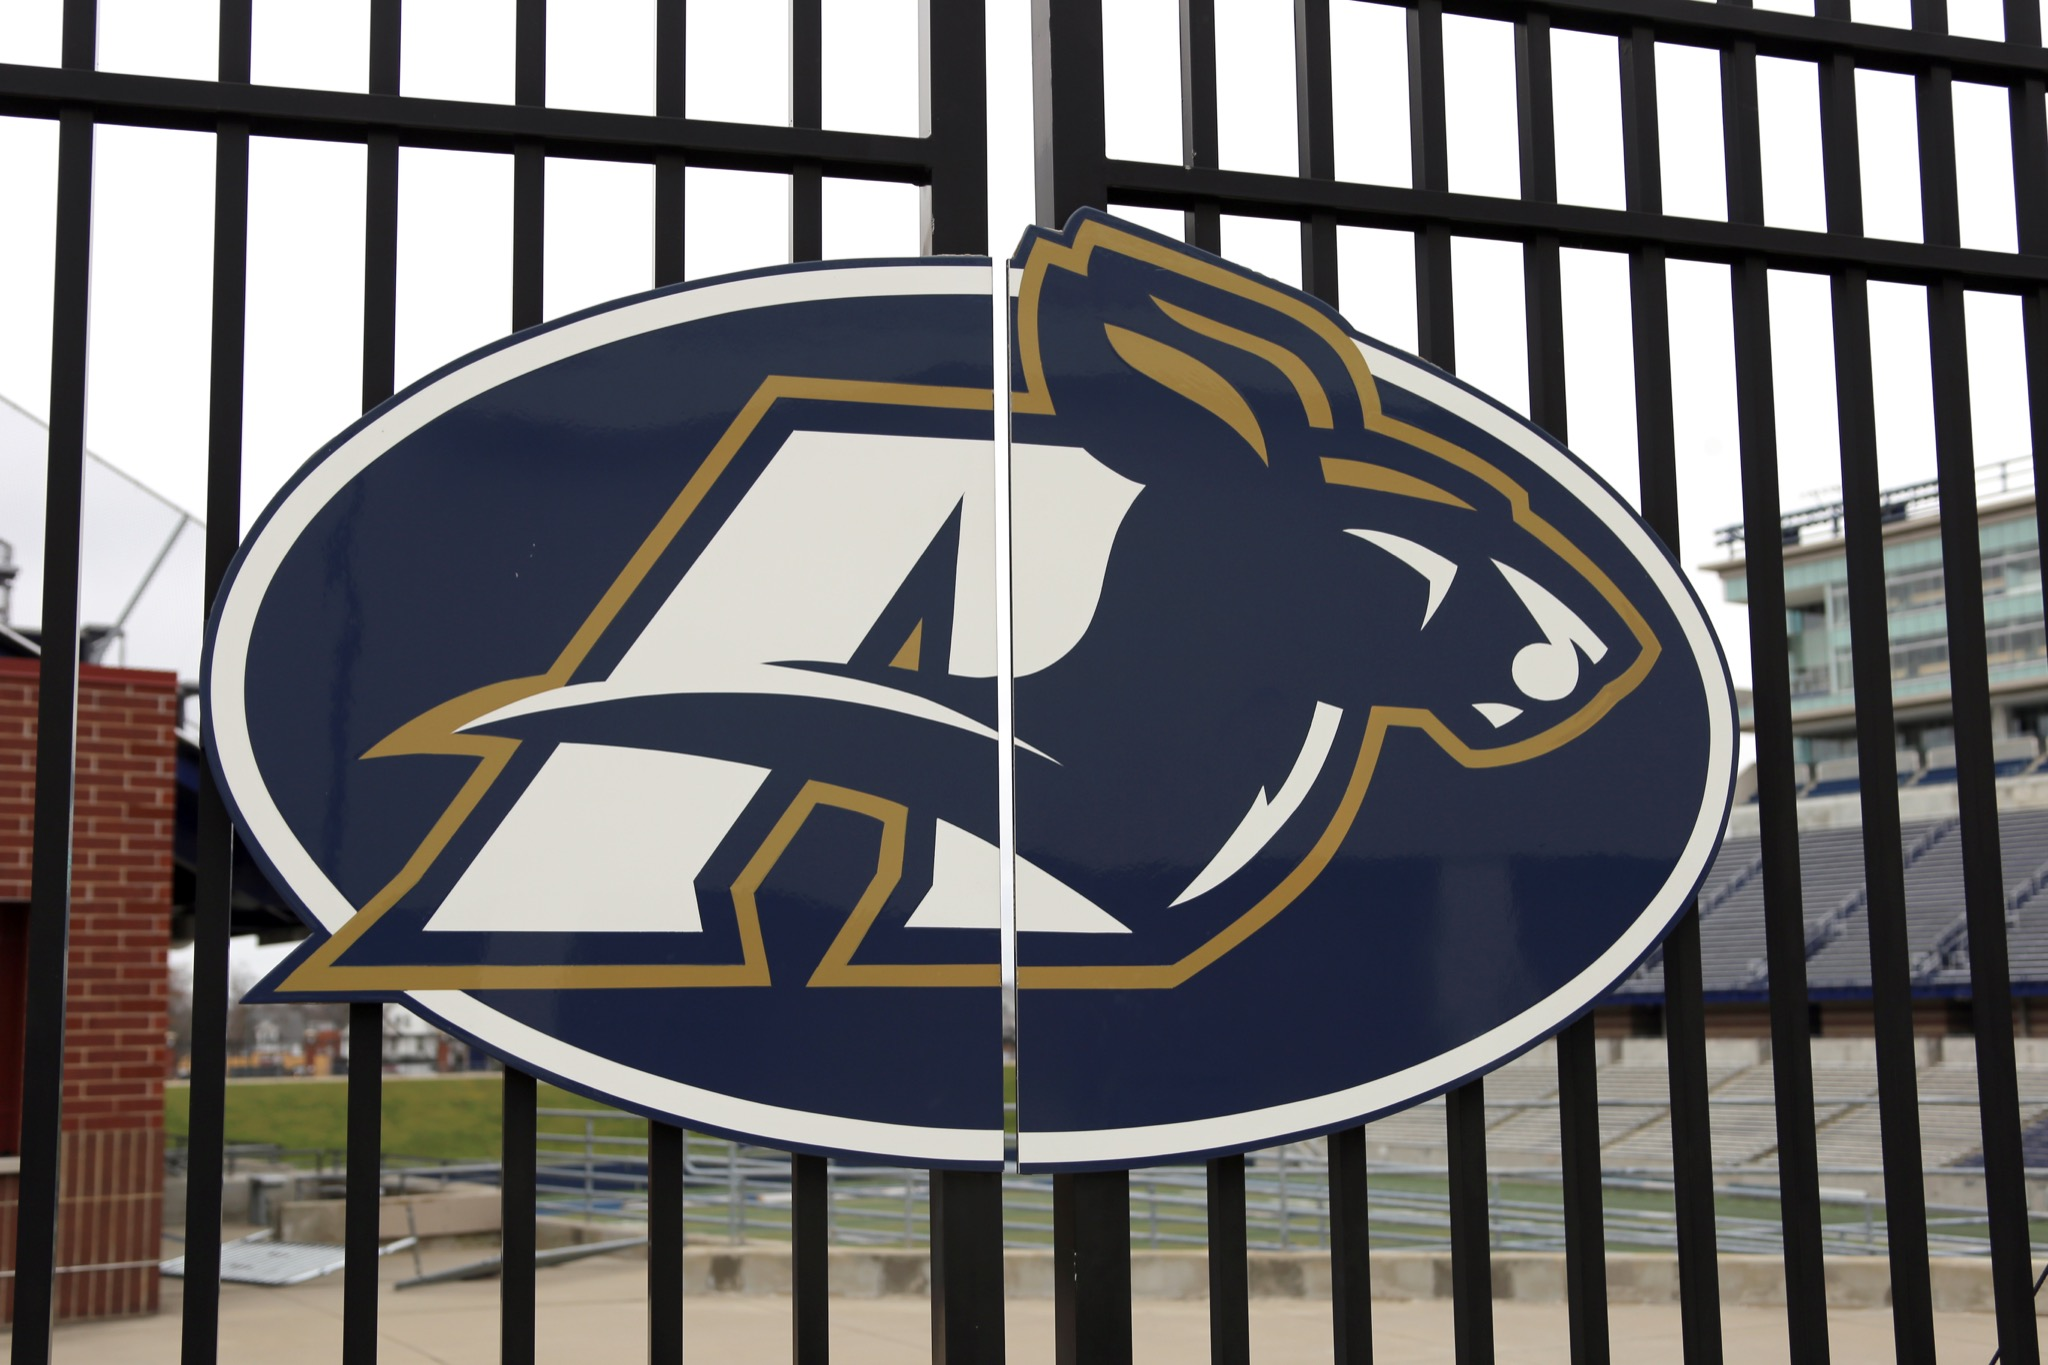 University of Akron Announces It Is Dropping 3 Sports Programs